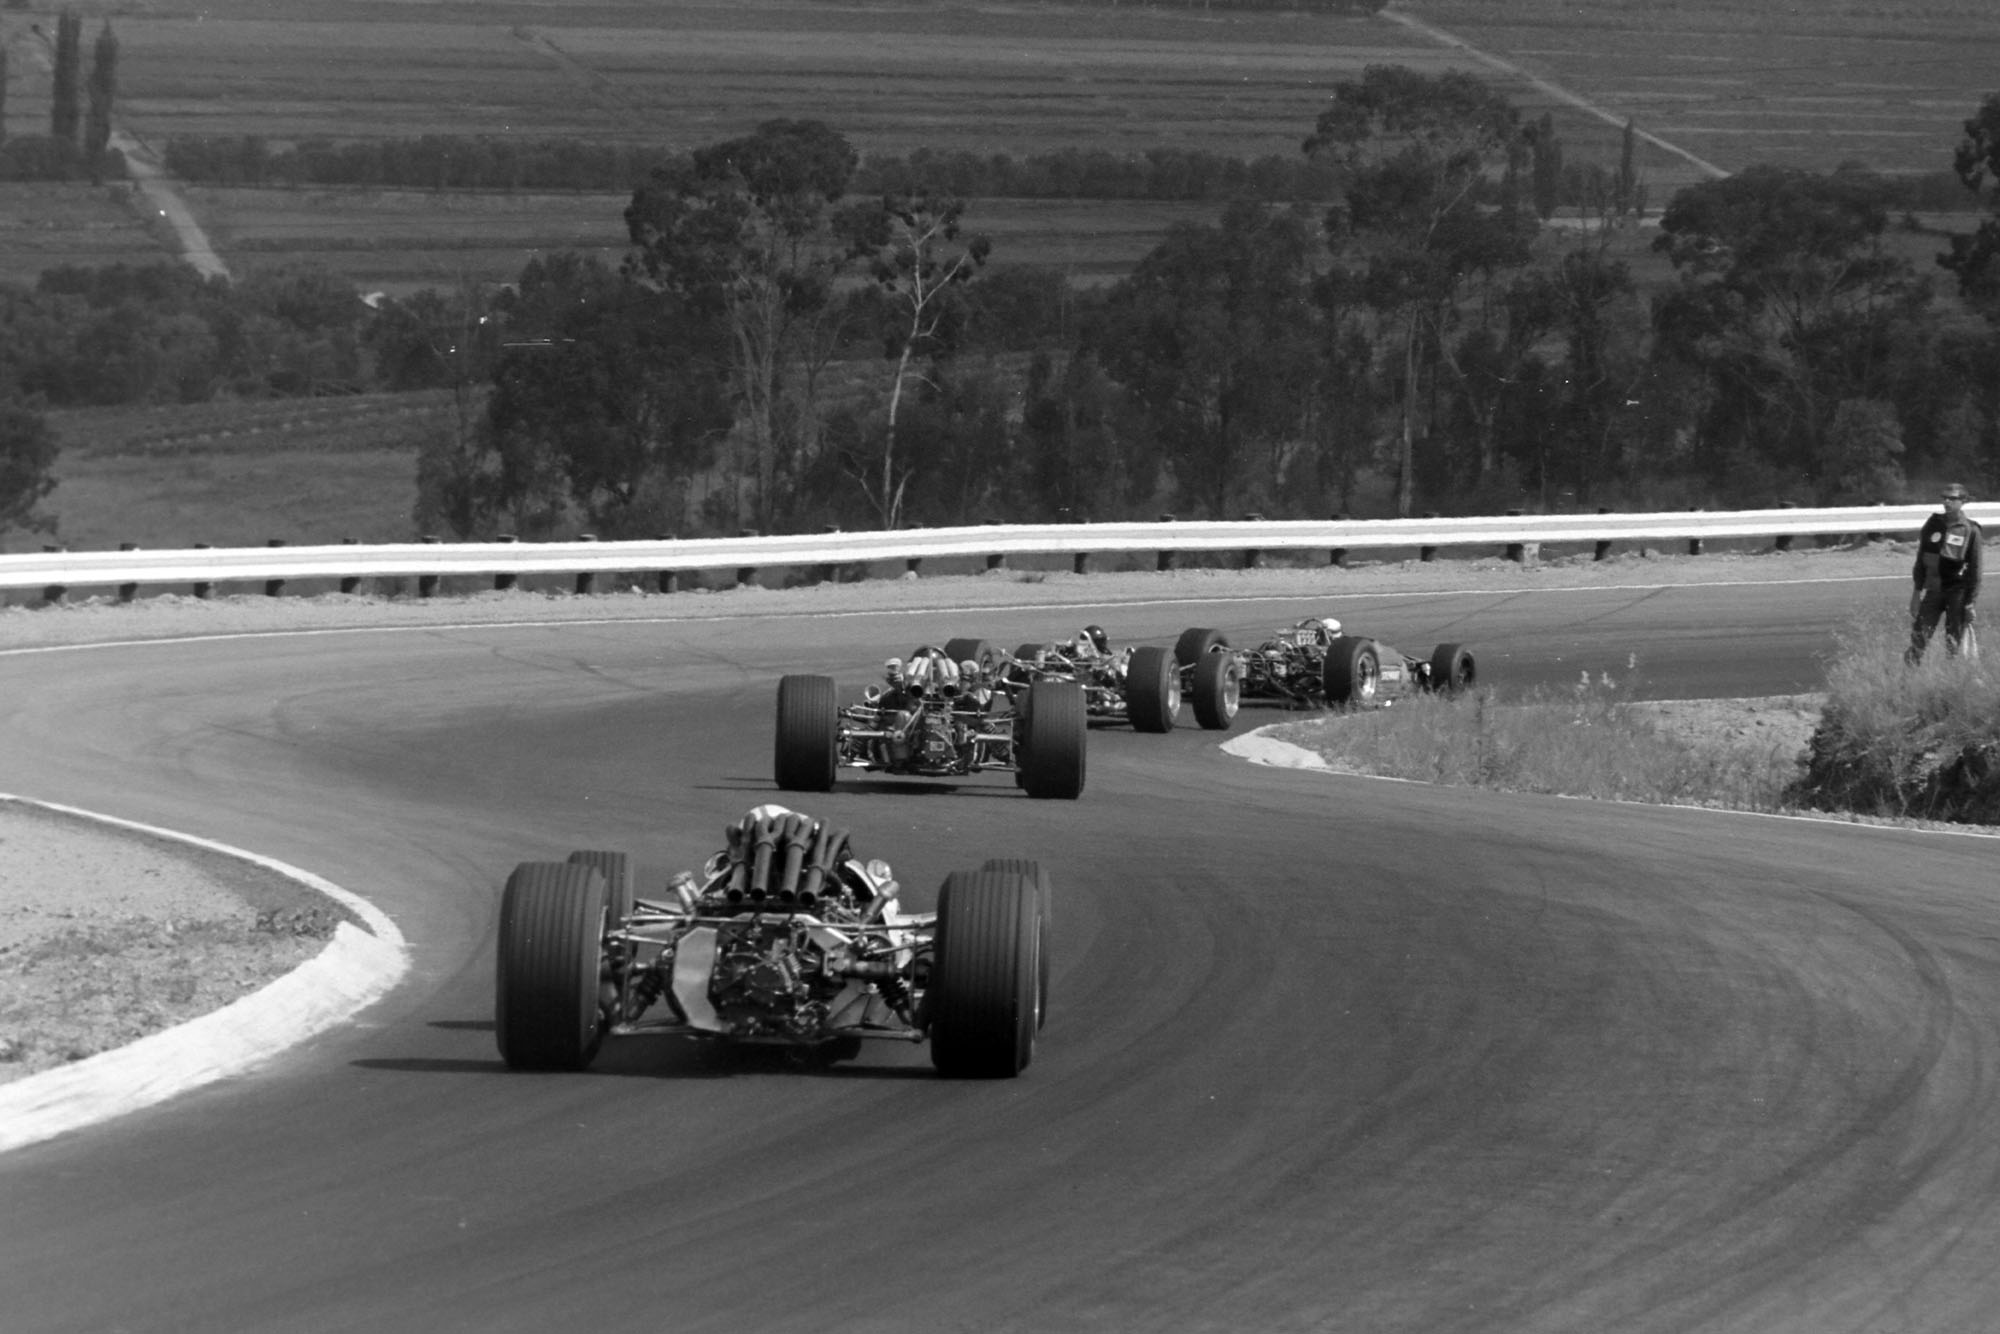 Jackie Stewart, Matra MS9 Ford, leads Jim Clark, Lotus 49 Ford, and Jochen Rindt, Brabham BT24 Repco, at the start.